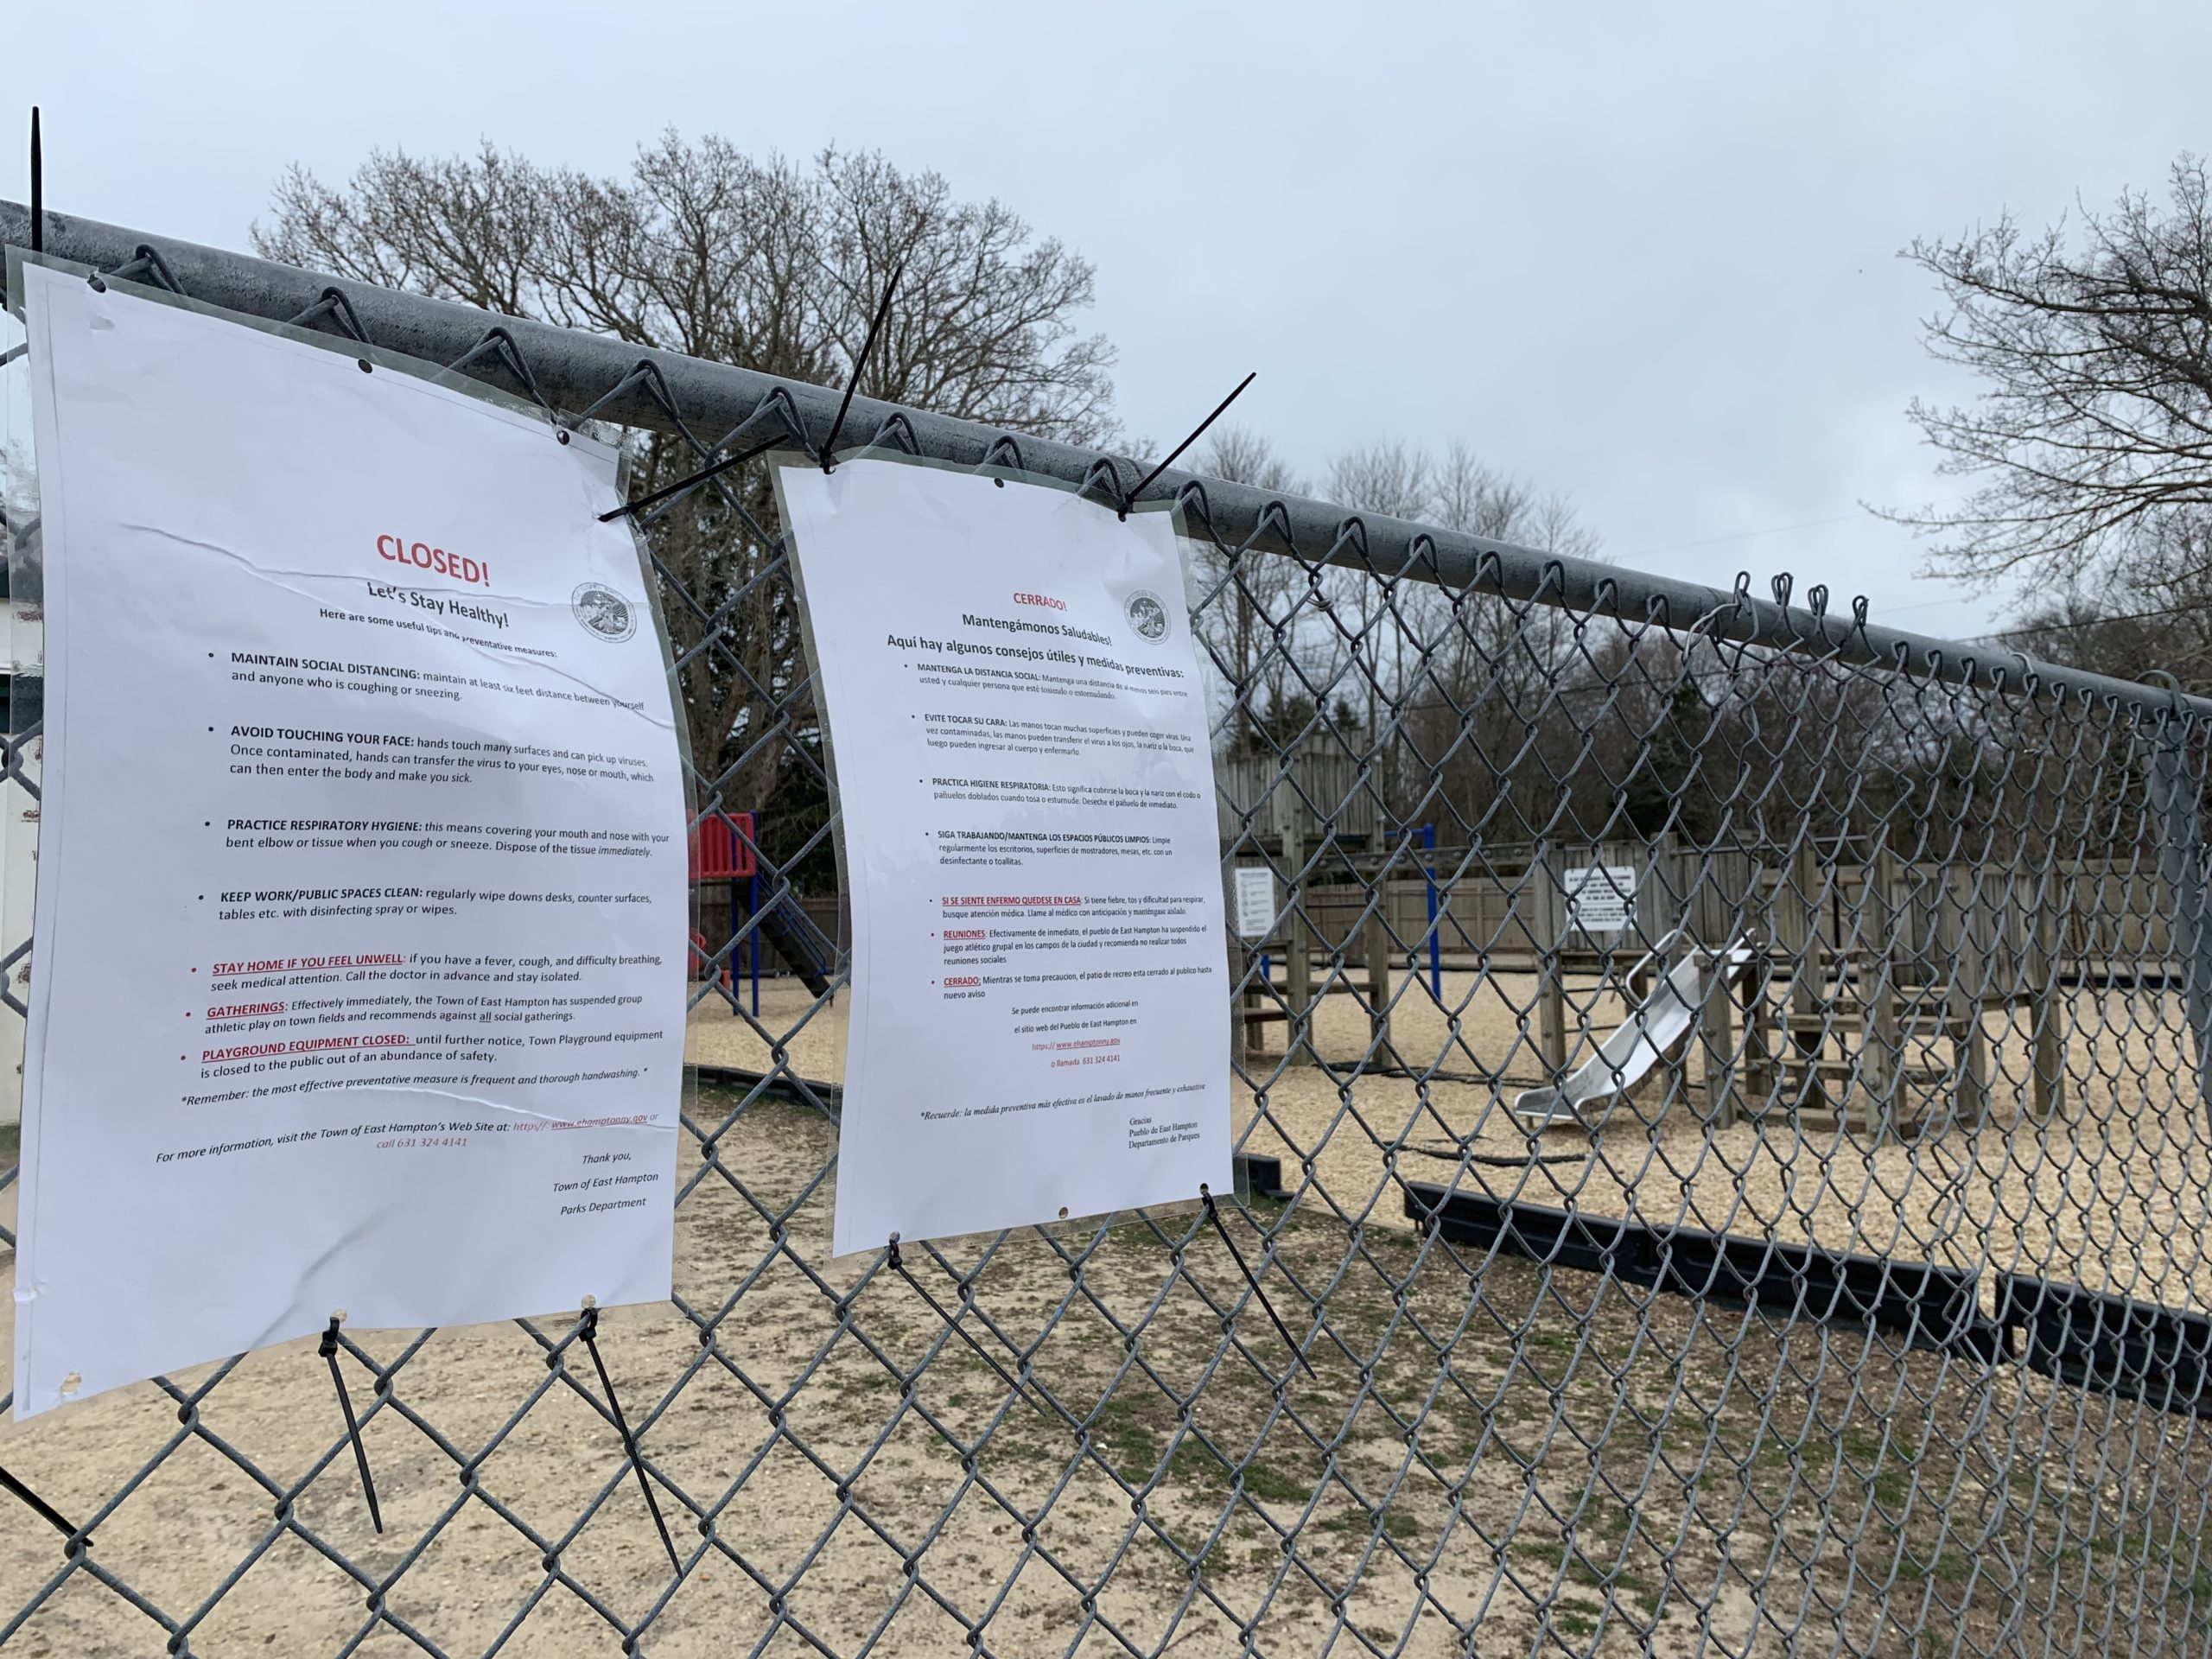 The playground at Springs School remains closed due to the COVID-19 virus outbreak.